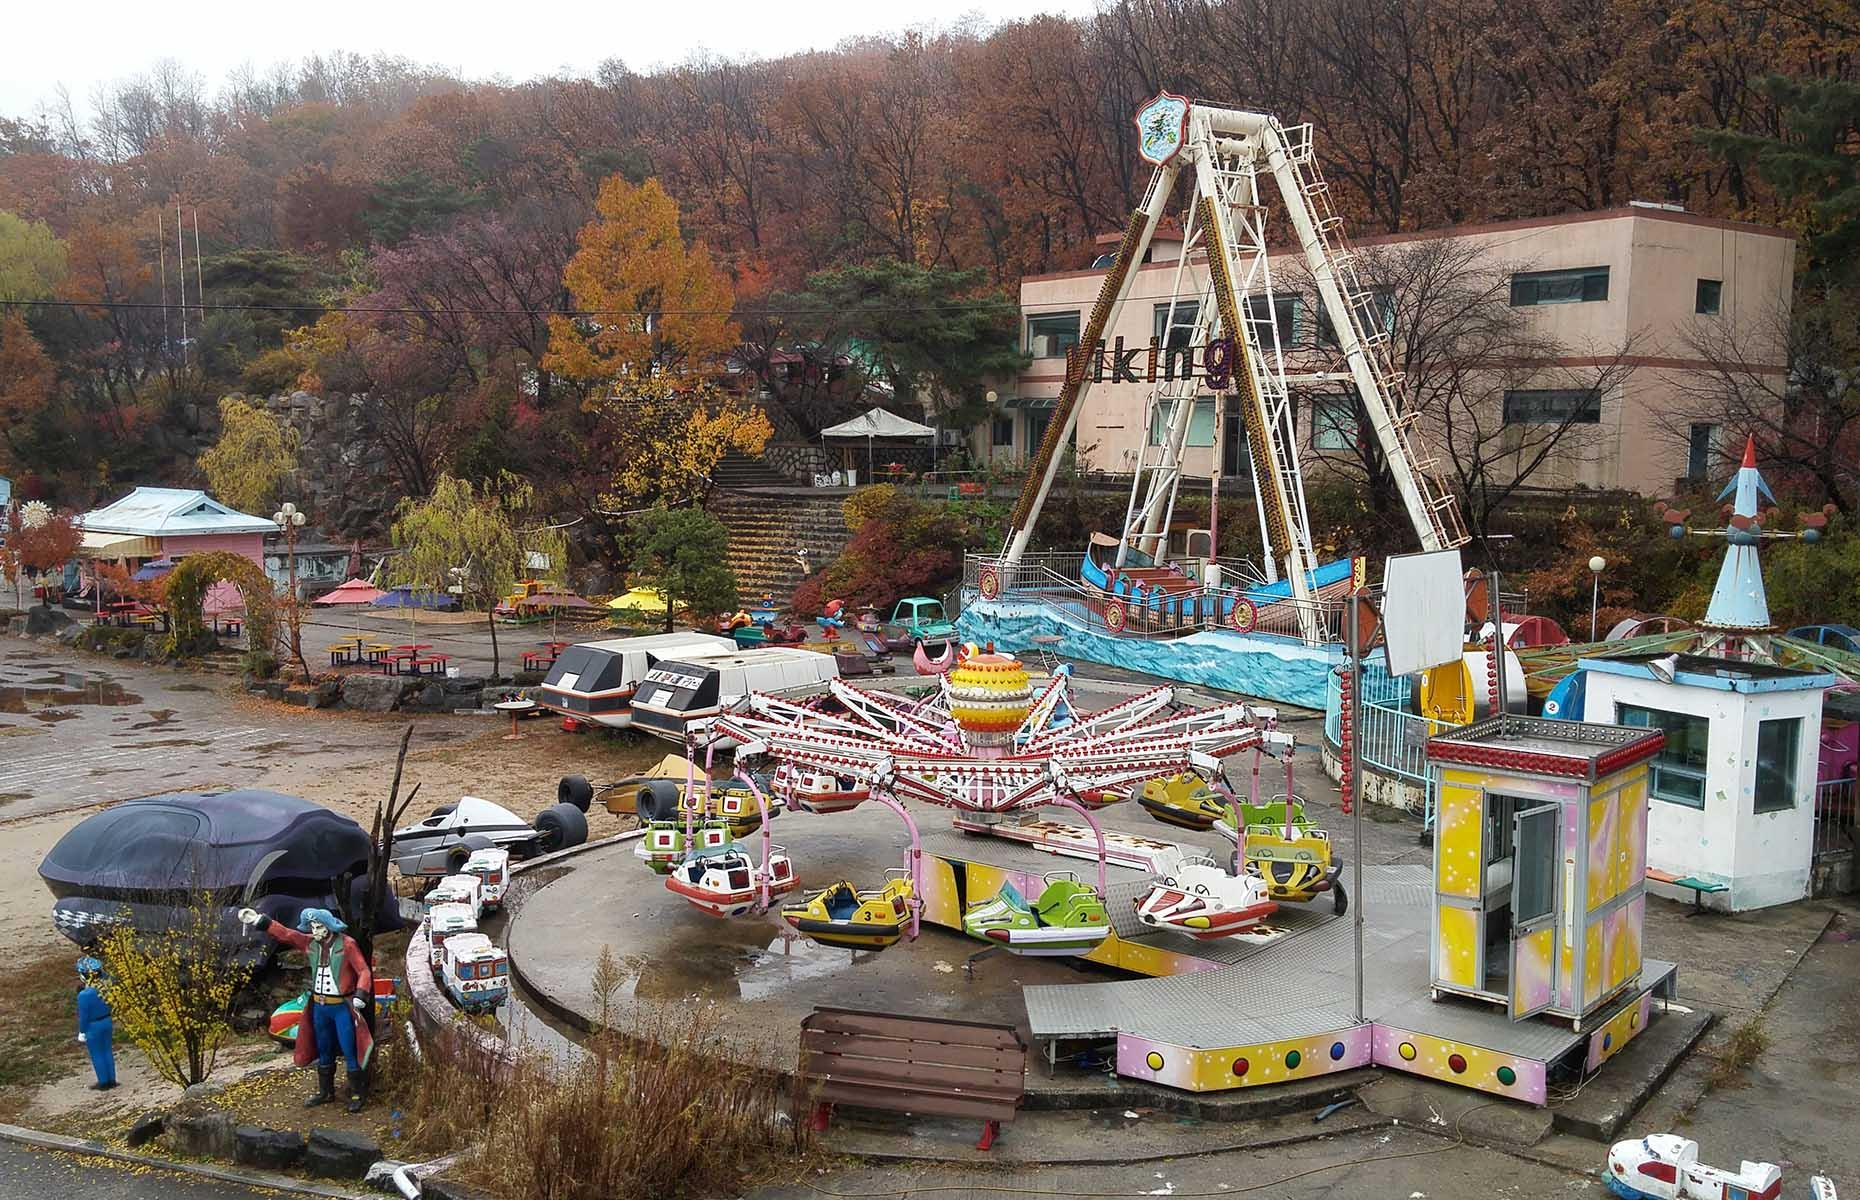 Slide 23 of 40: This tiny abandoned theme park has now become an attraction in itself. While you can't ride the merry go rounds or dodgems at Yongma Land, pay a small fee to enter and you can wander among the derelict grounds as you wish.